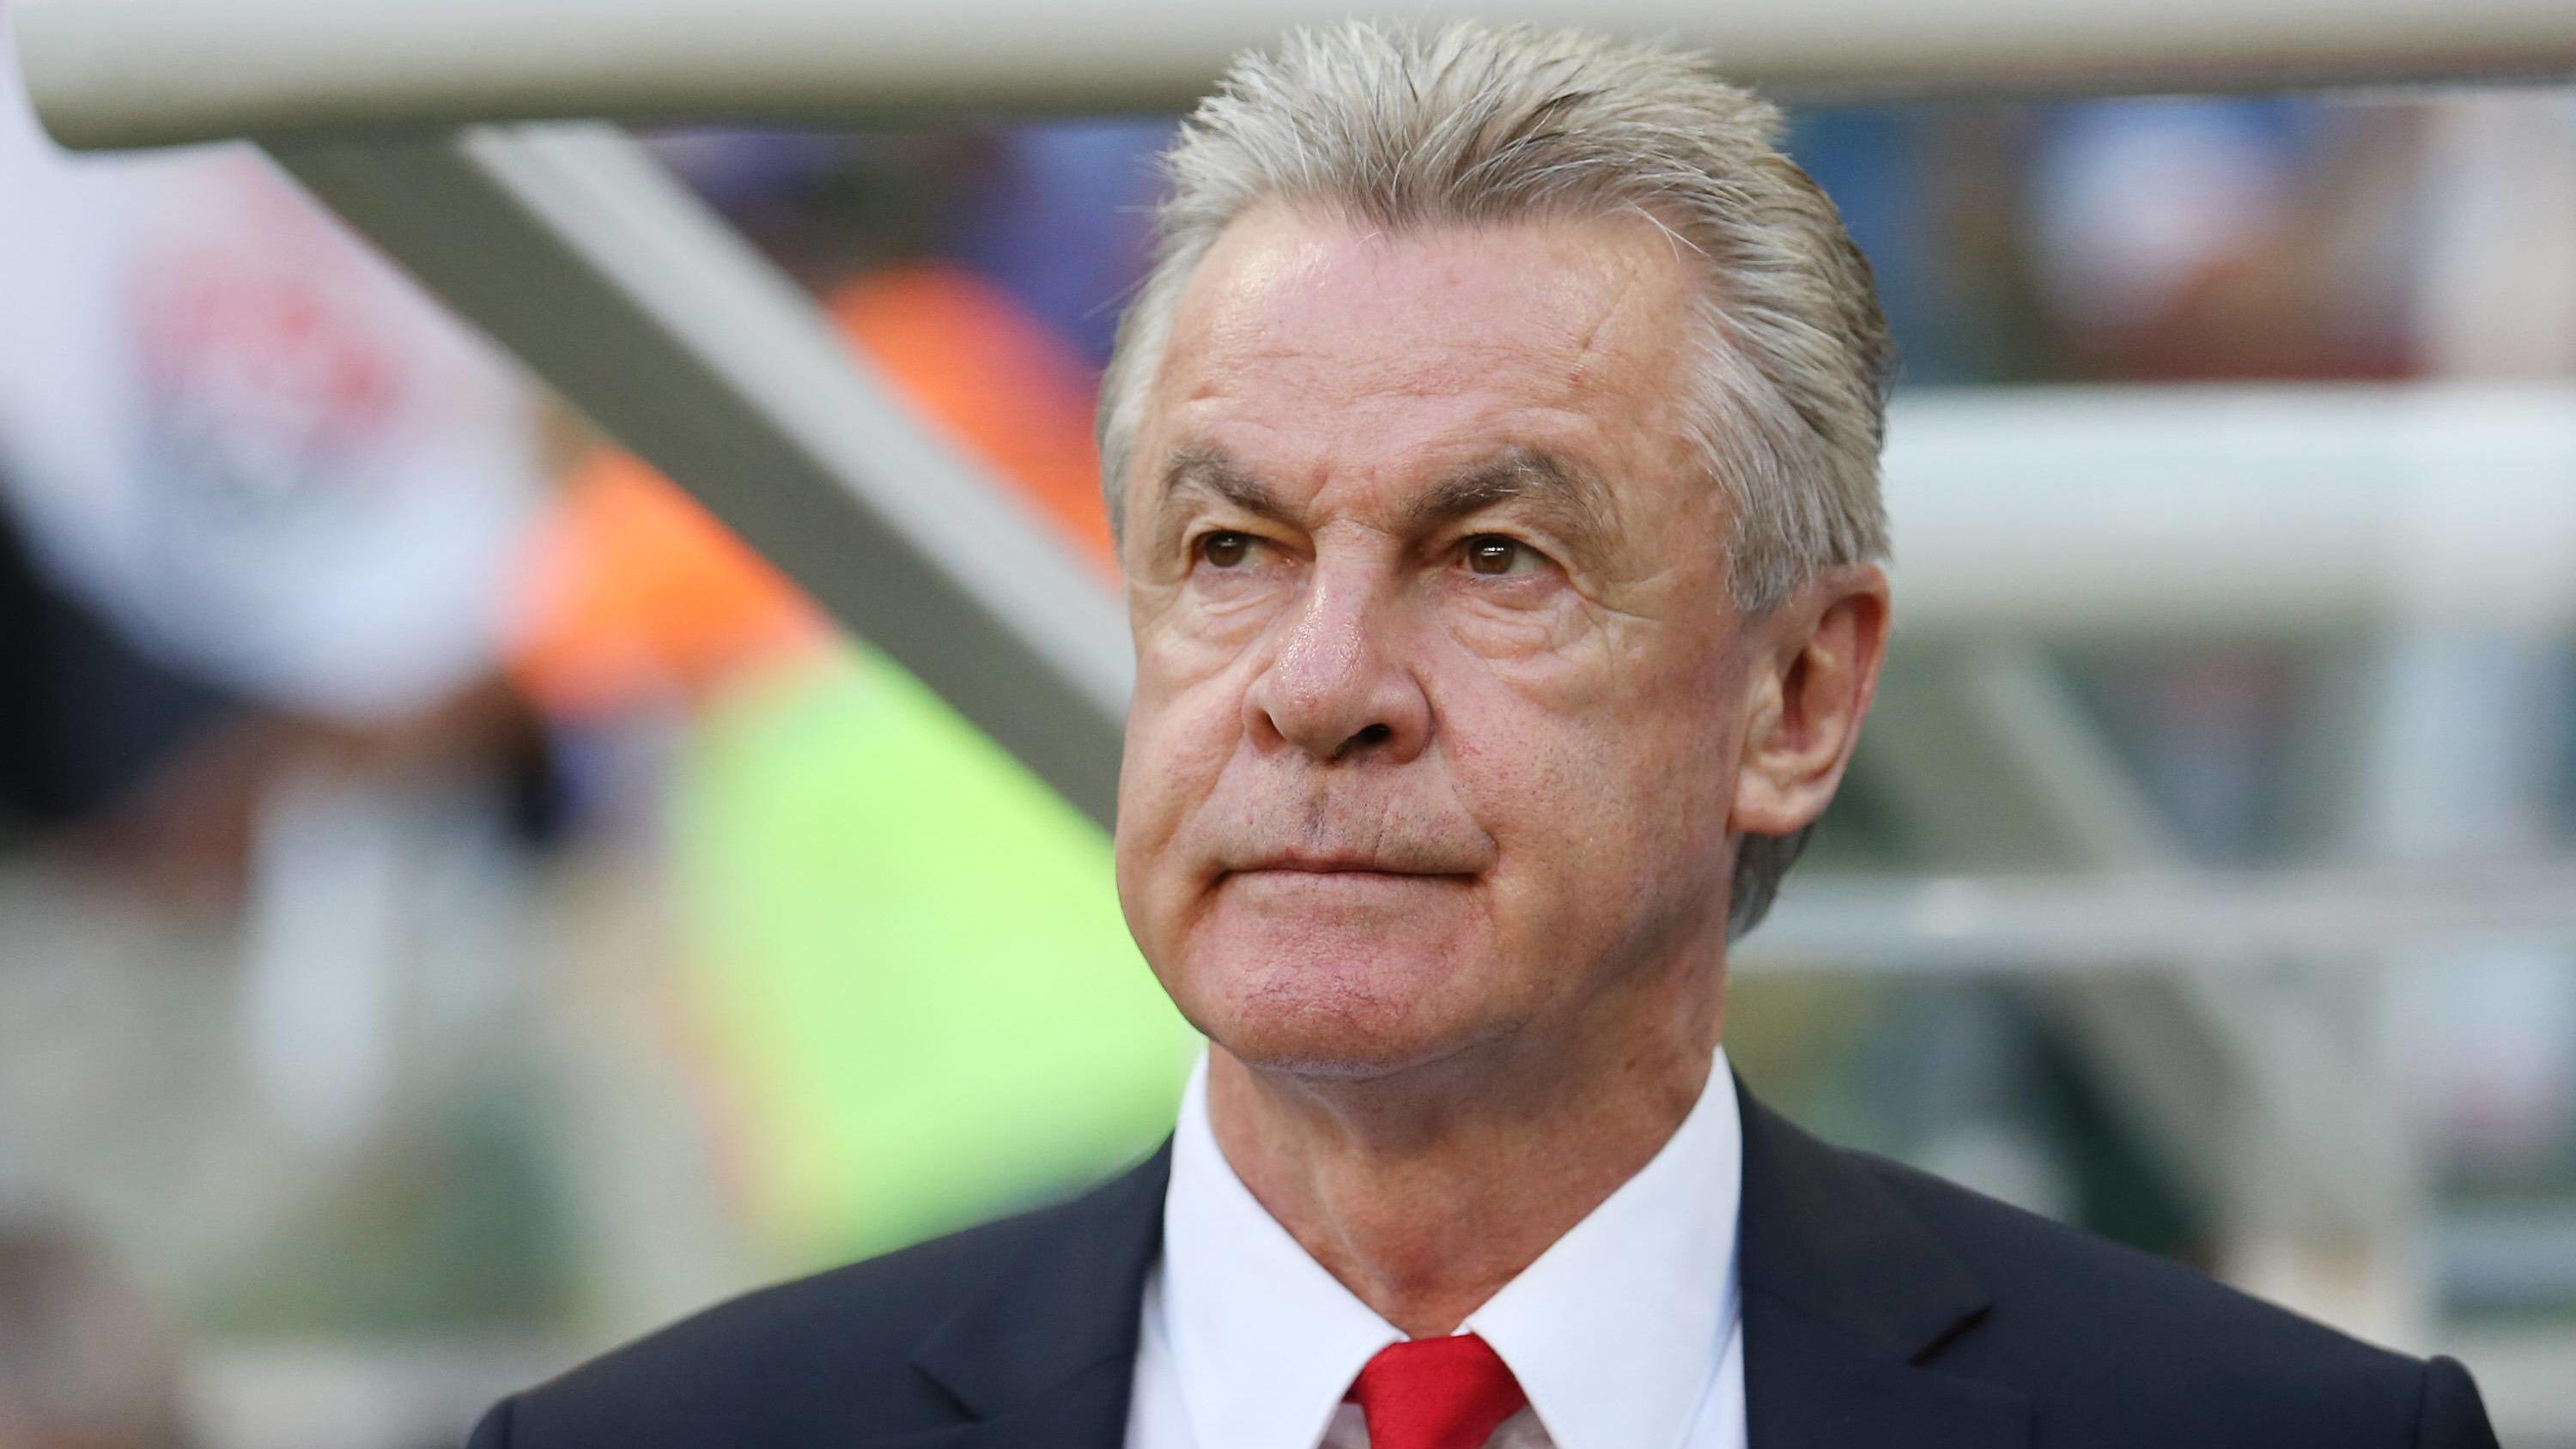 (140620) -- SALVADOR, June 20, 2014 (Xinhua) -- Switzerland s head coach Ottmar Hitzfeld is seen during a Group E match between Switzerland and France of 2014 FIFA World Cup at the Arena Fonte Nova Stadium in Salvador, Brazil, on June 20, 2014.(Xinhu